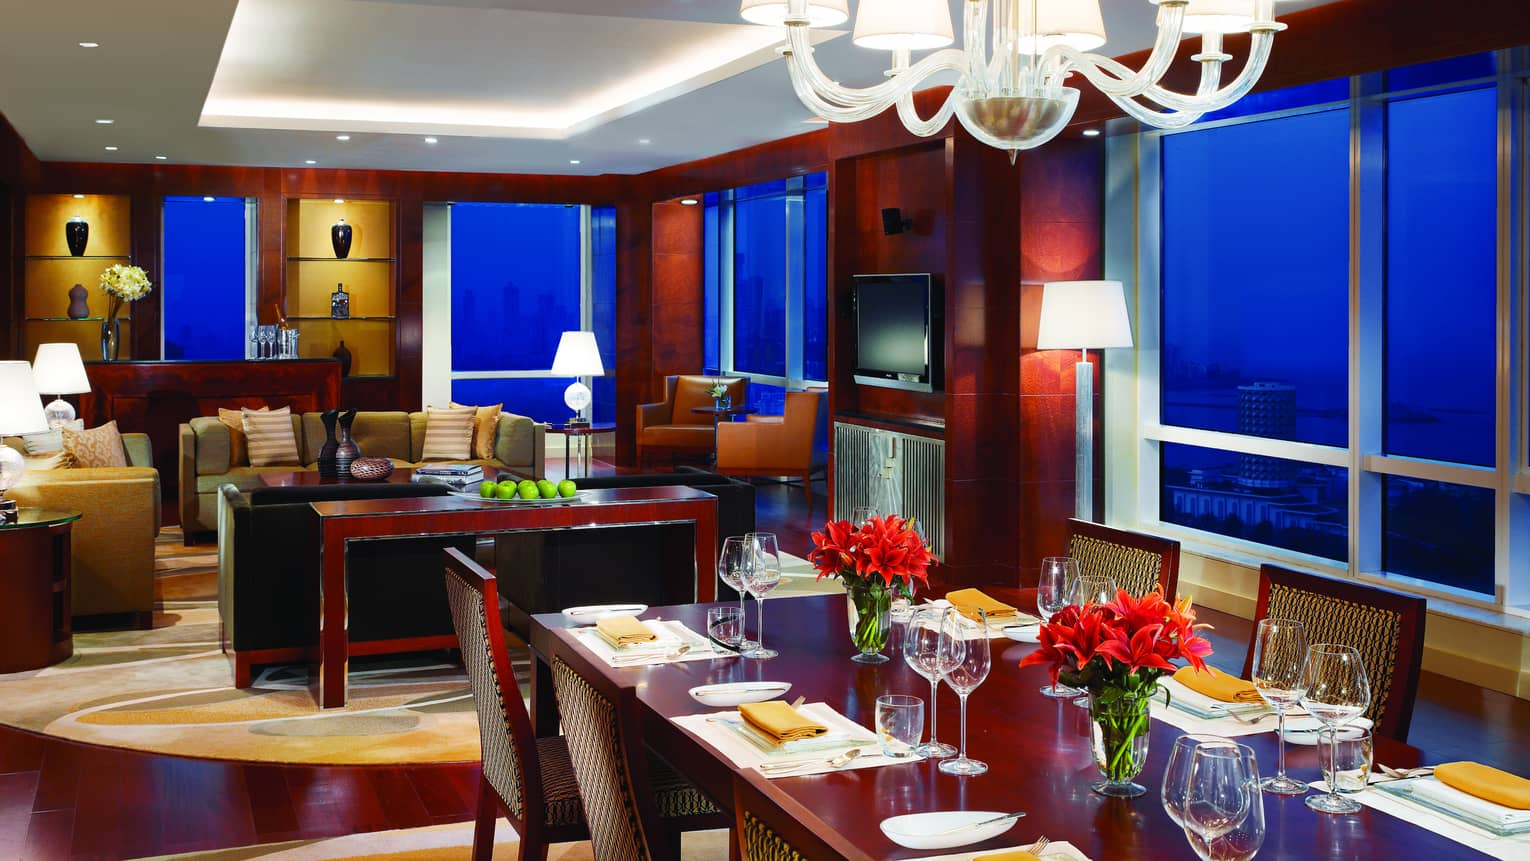 Presidential Suite long dining table under chandelier, seating area, corner windows at night